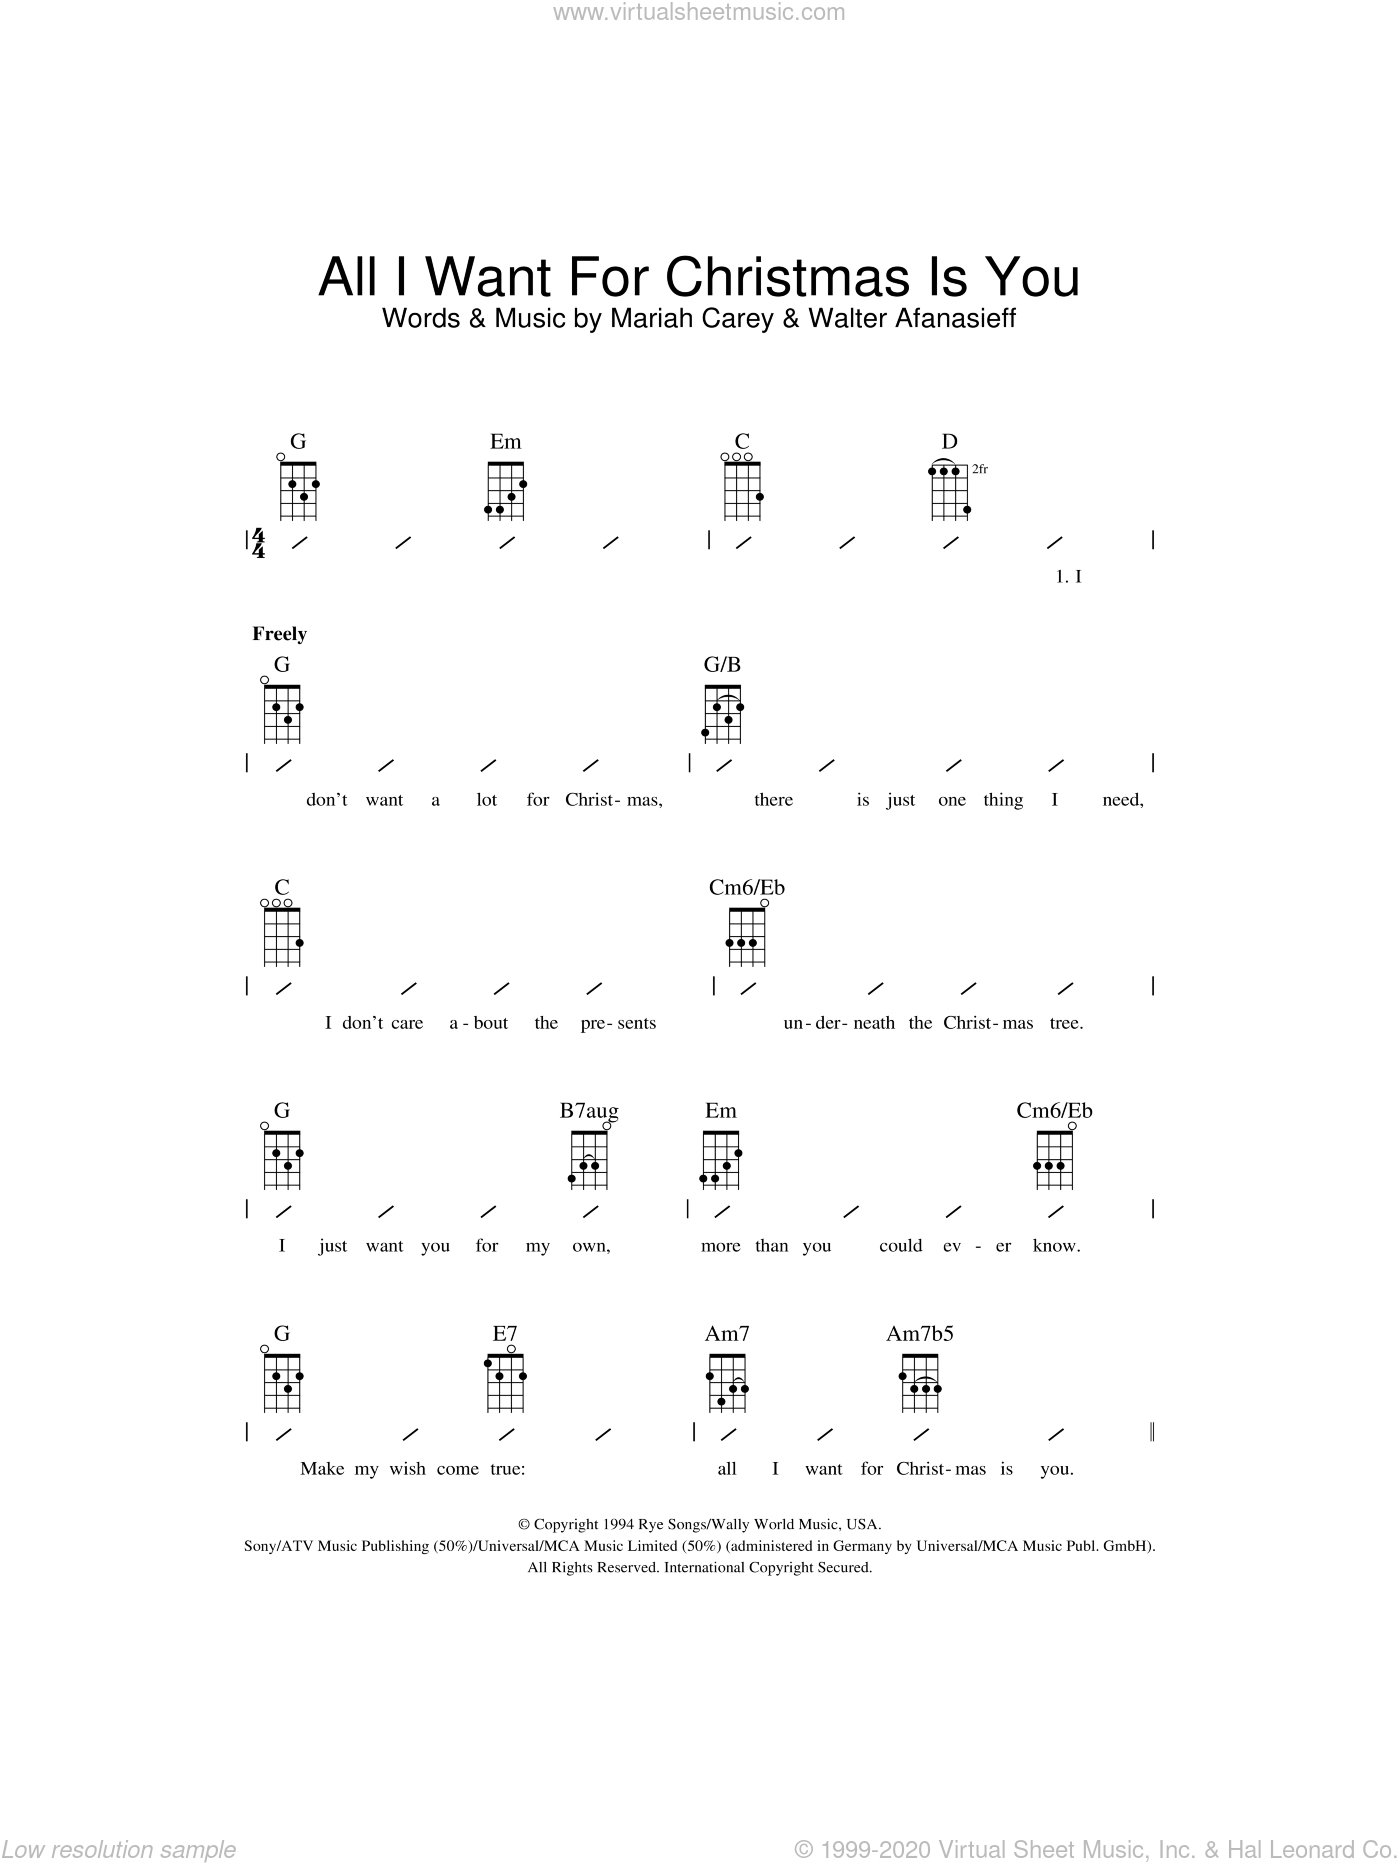 All I Want For Christmas Is You sheet music for ukulele (chords) by Walter Afanasieff and Mariah Carey